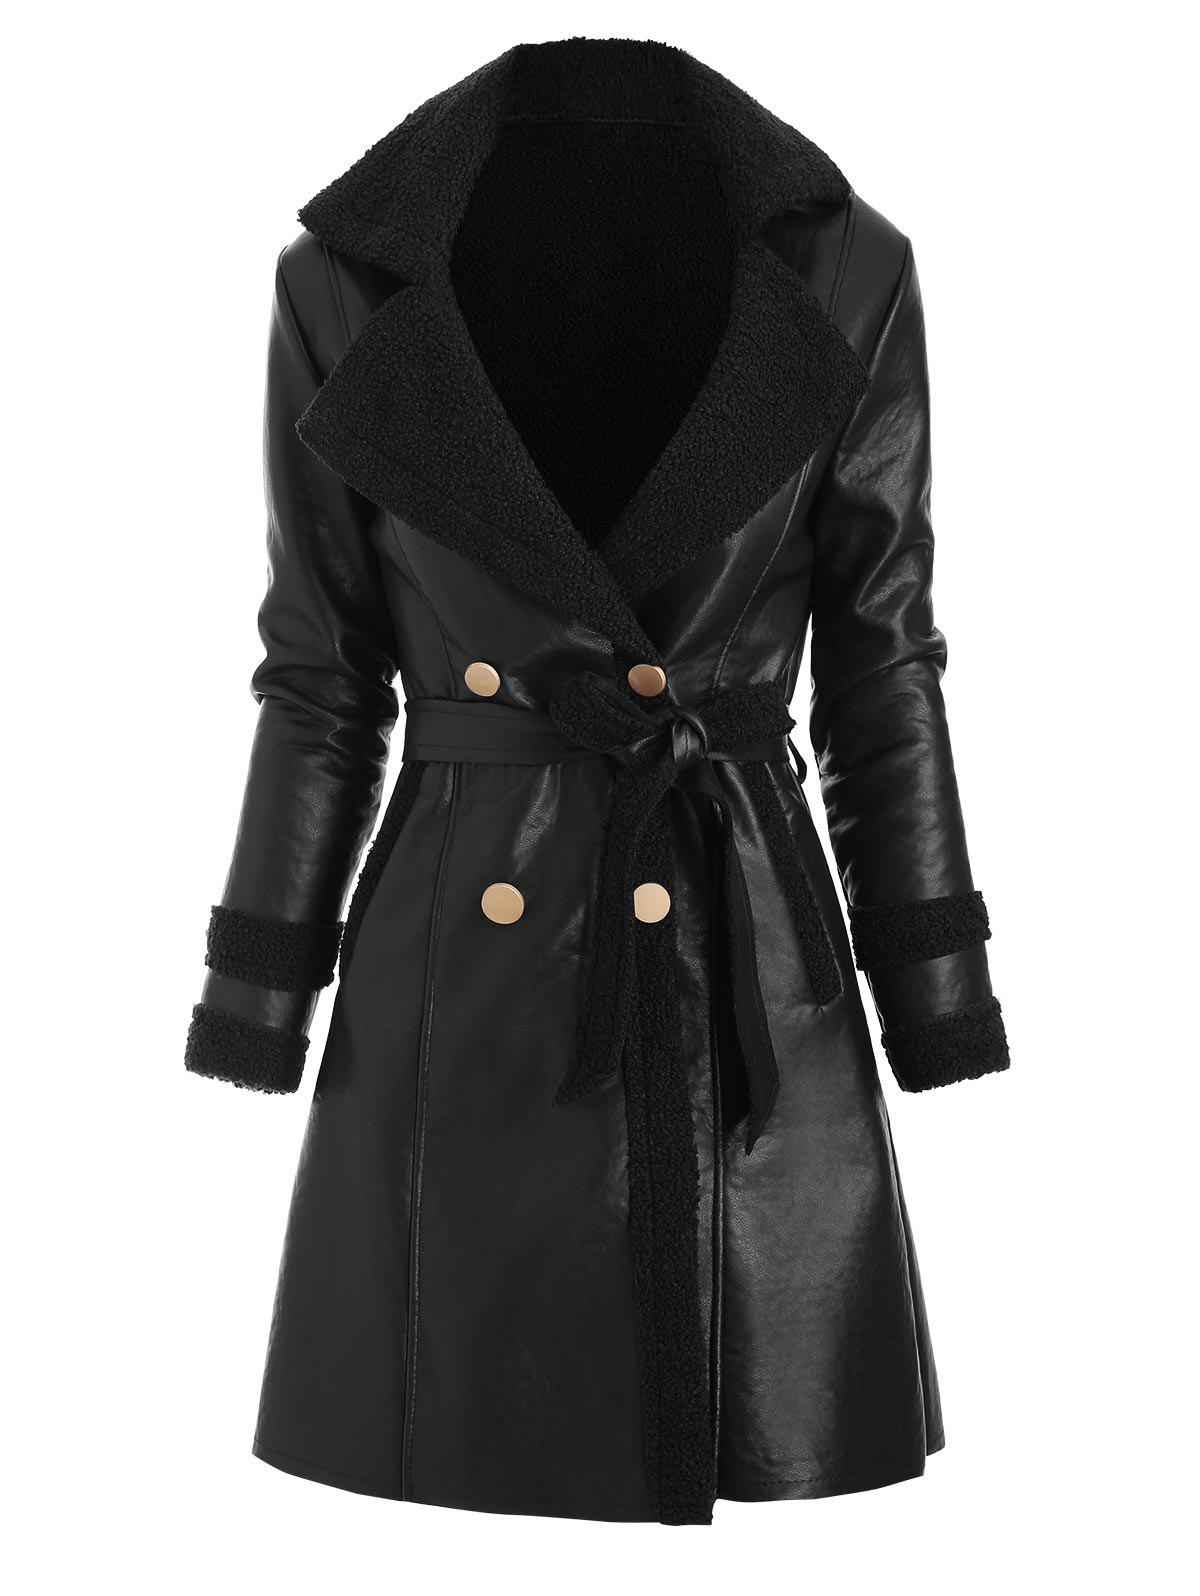 Faux Leather Shearling Insert Belted Pocket Coat - BLACK 3XL